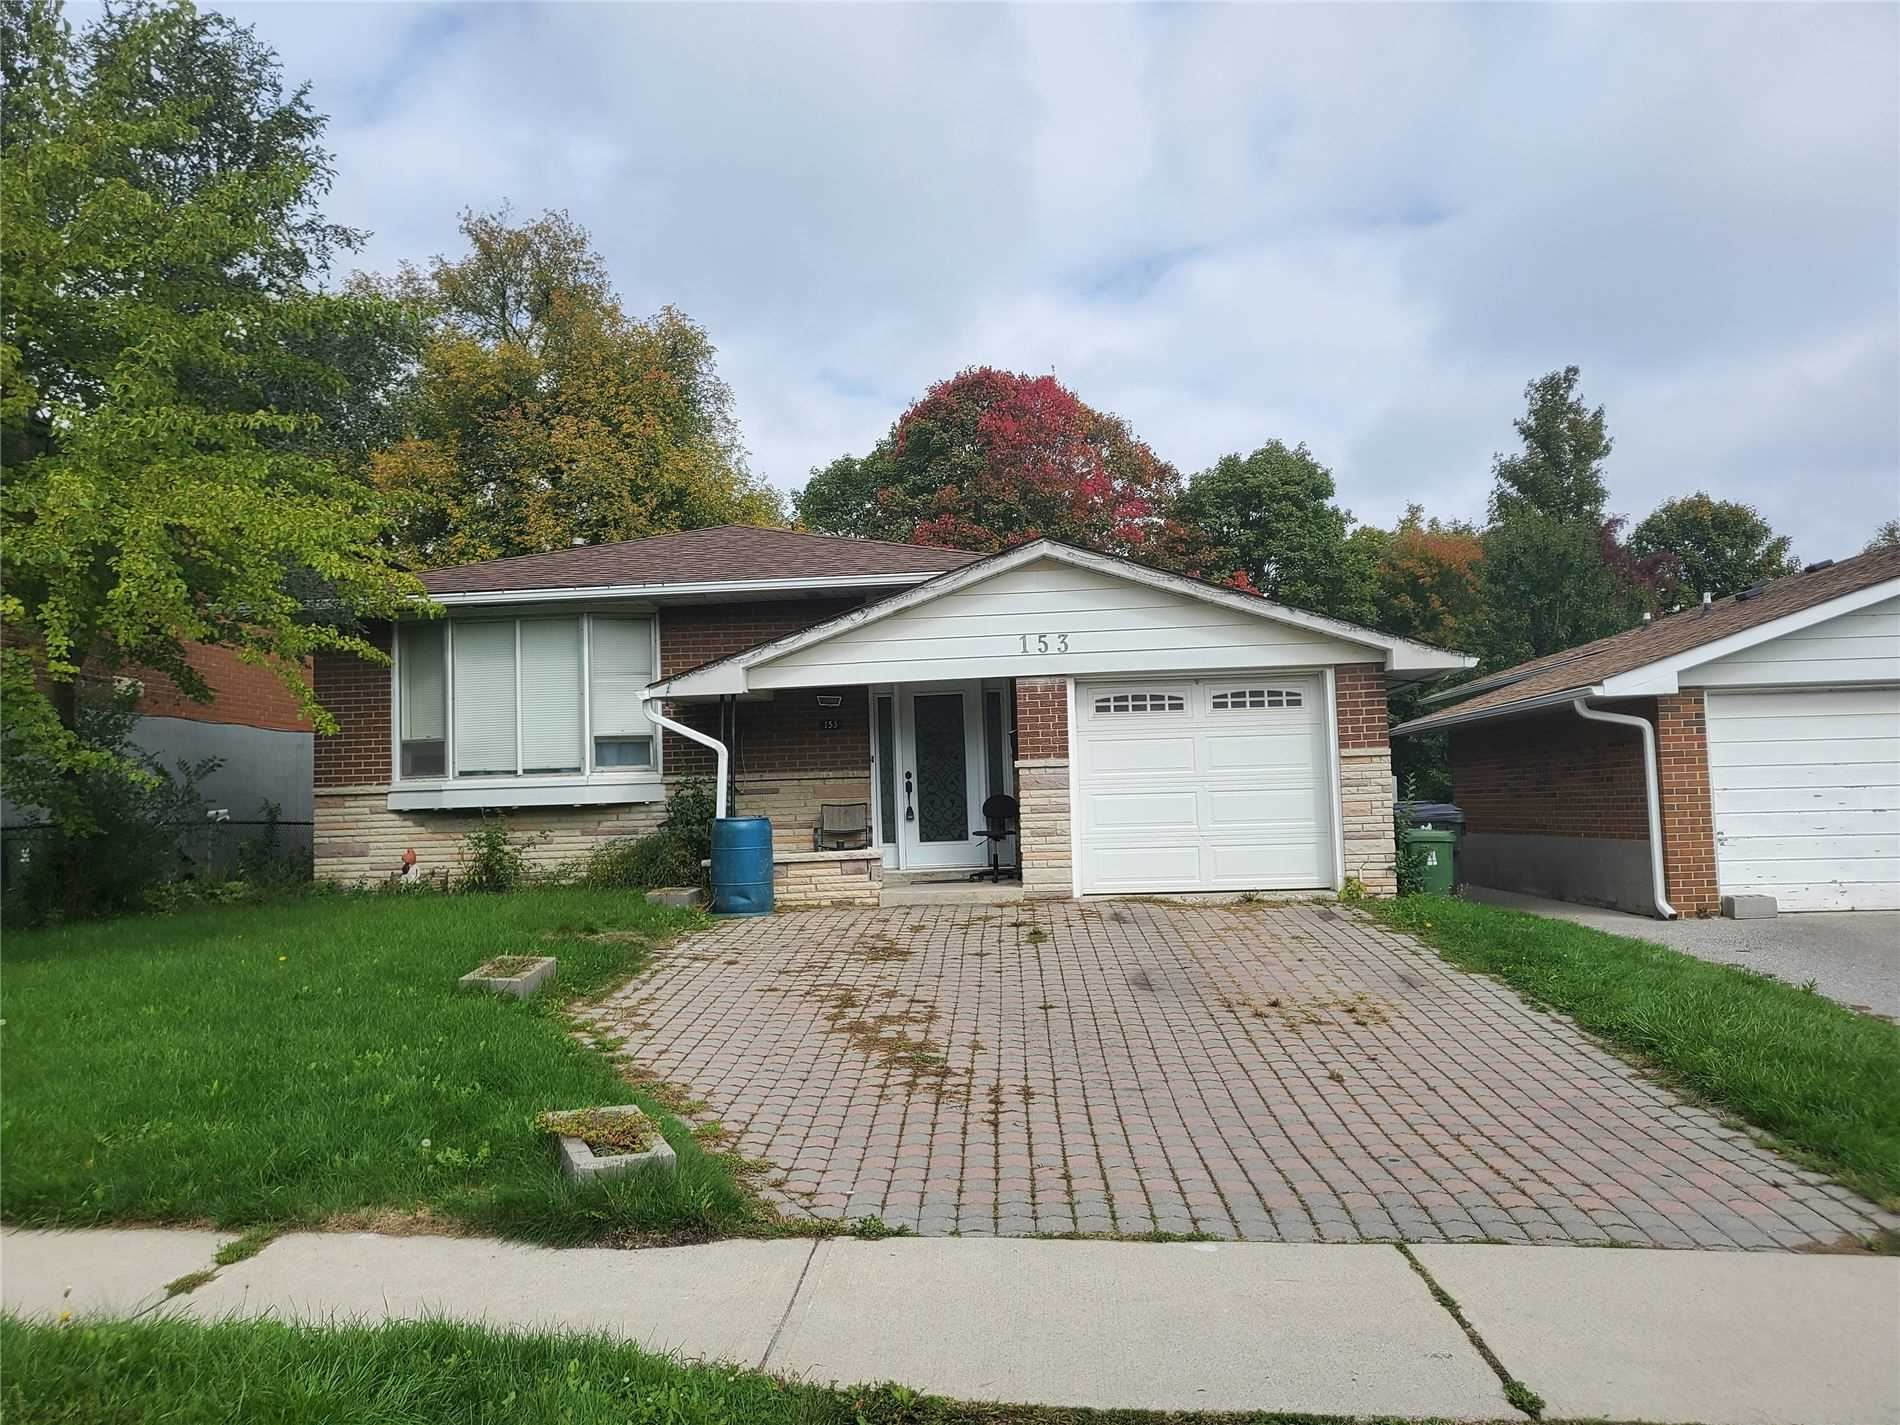 153 Thicketwood Dr, Toronto, ON M1J2A4 - MLS#: E5394680